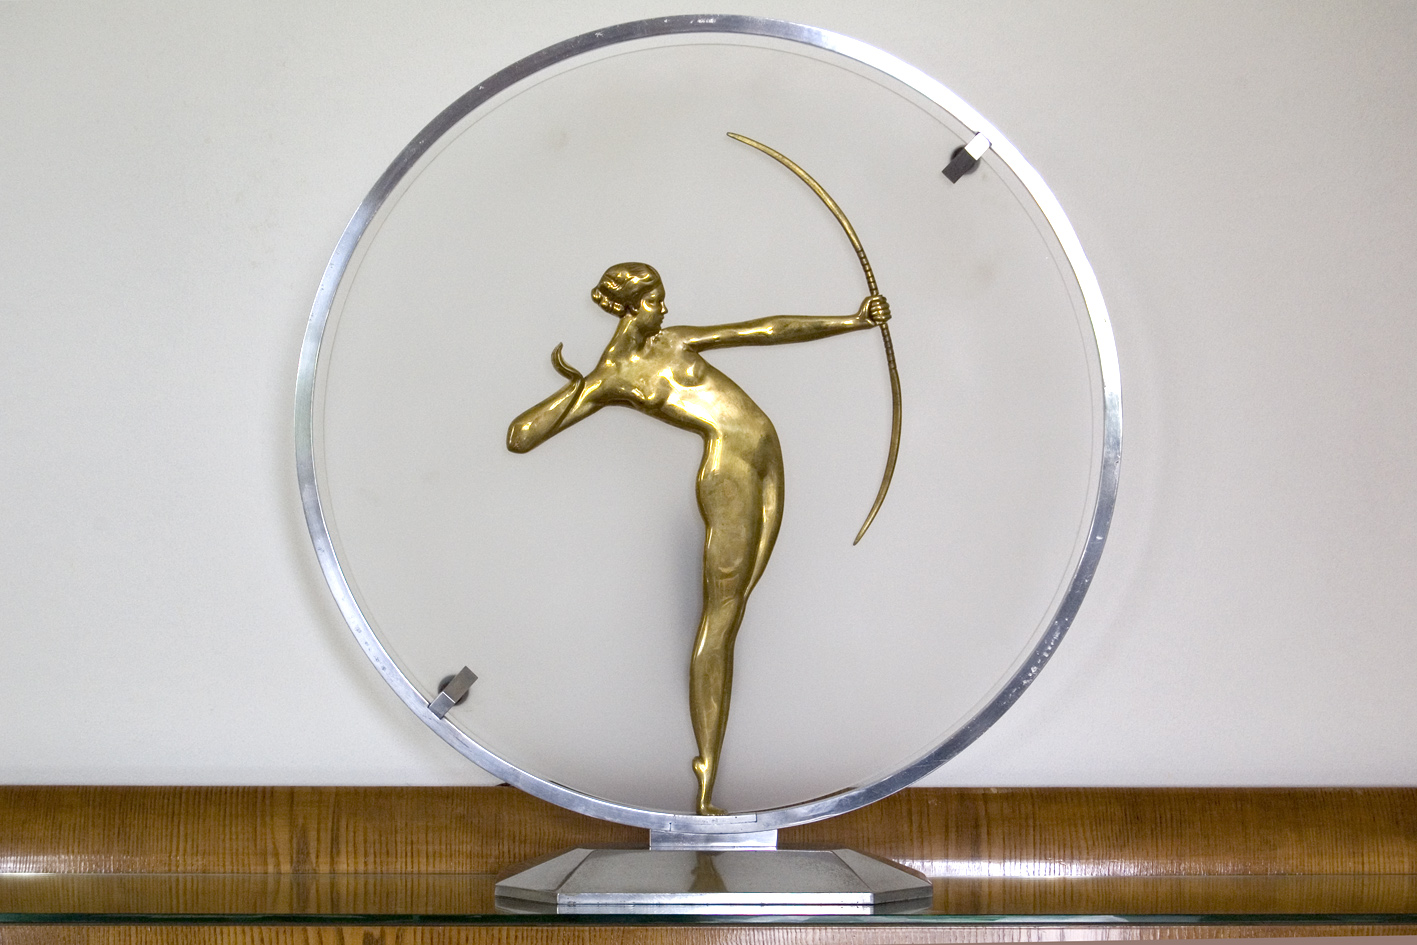 Art deco sculpture lamp